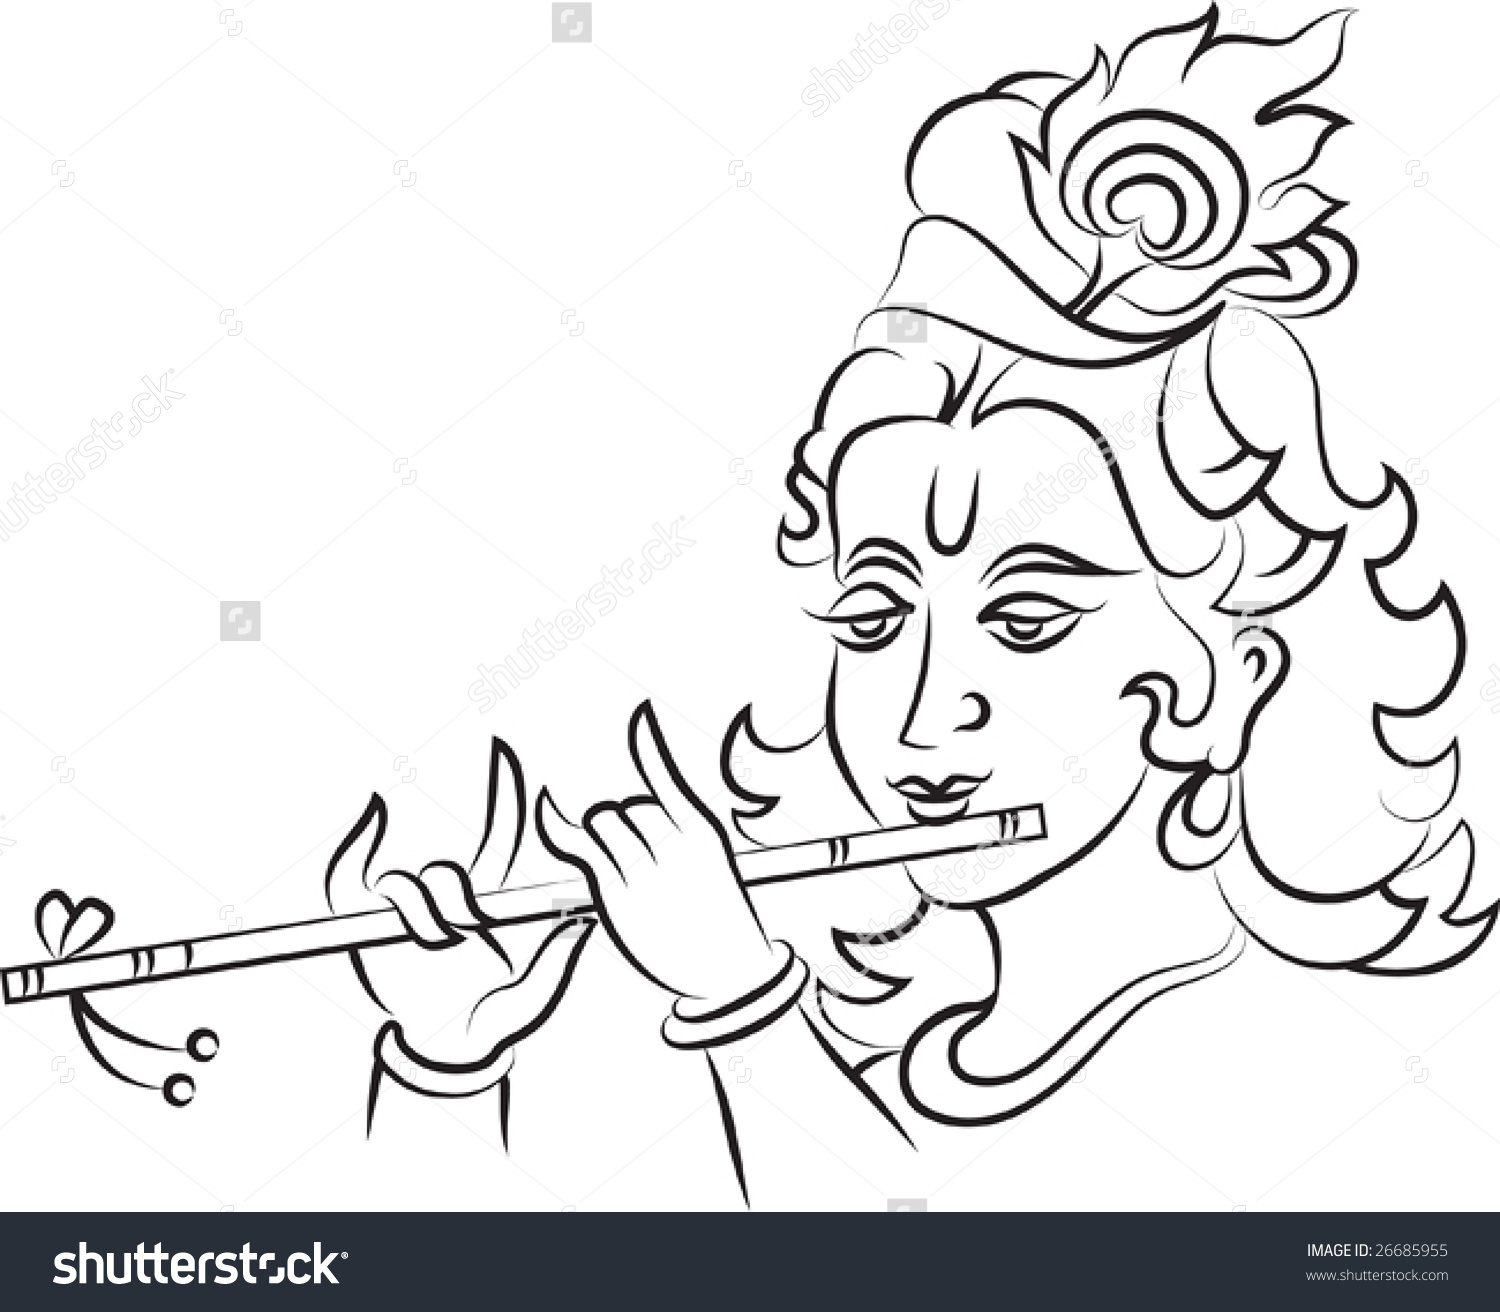 1500x1312 Lord Krishna Drawings Simple